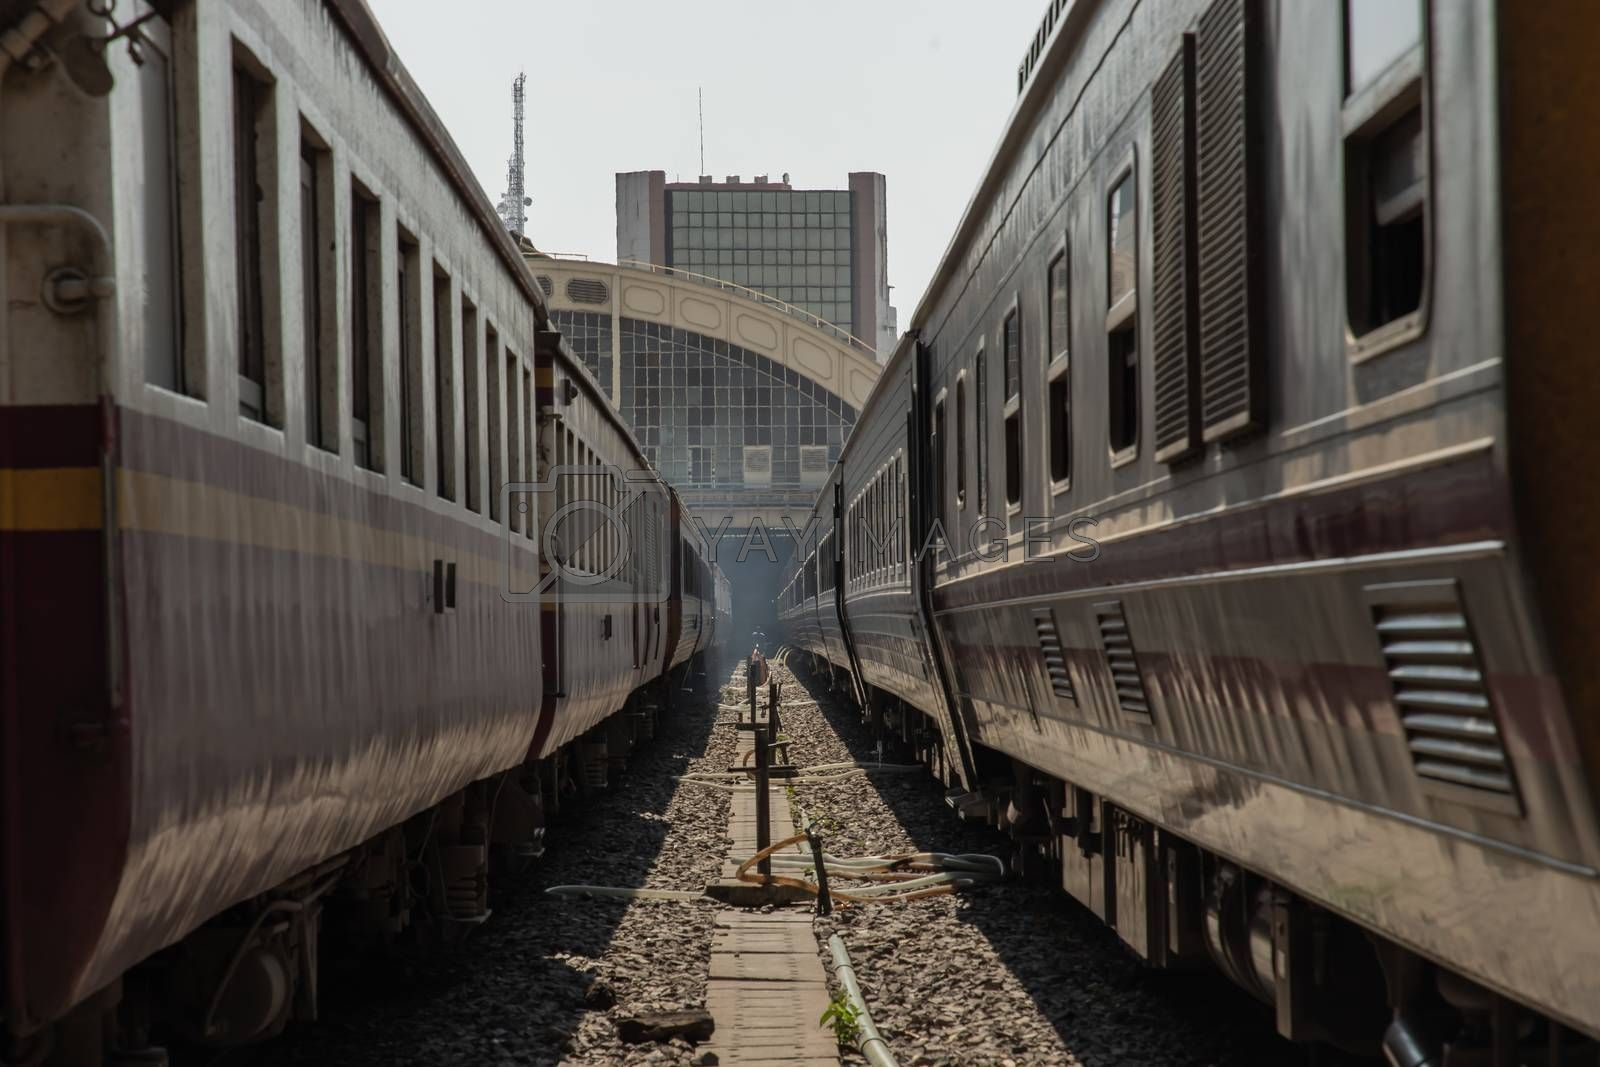 Two train is parked at platform waiting for passengers in hua lamphong railway station. the main railway station of Thailand located in the center of Bangkok. Focus and blur.